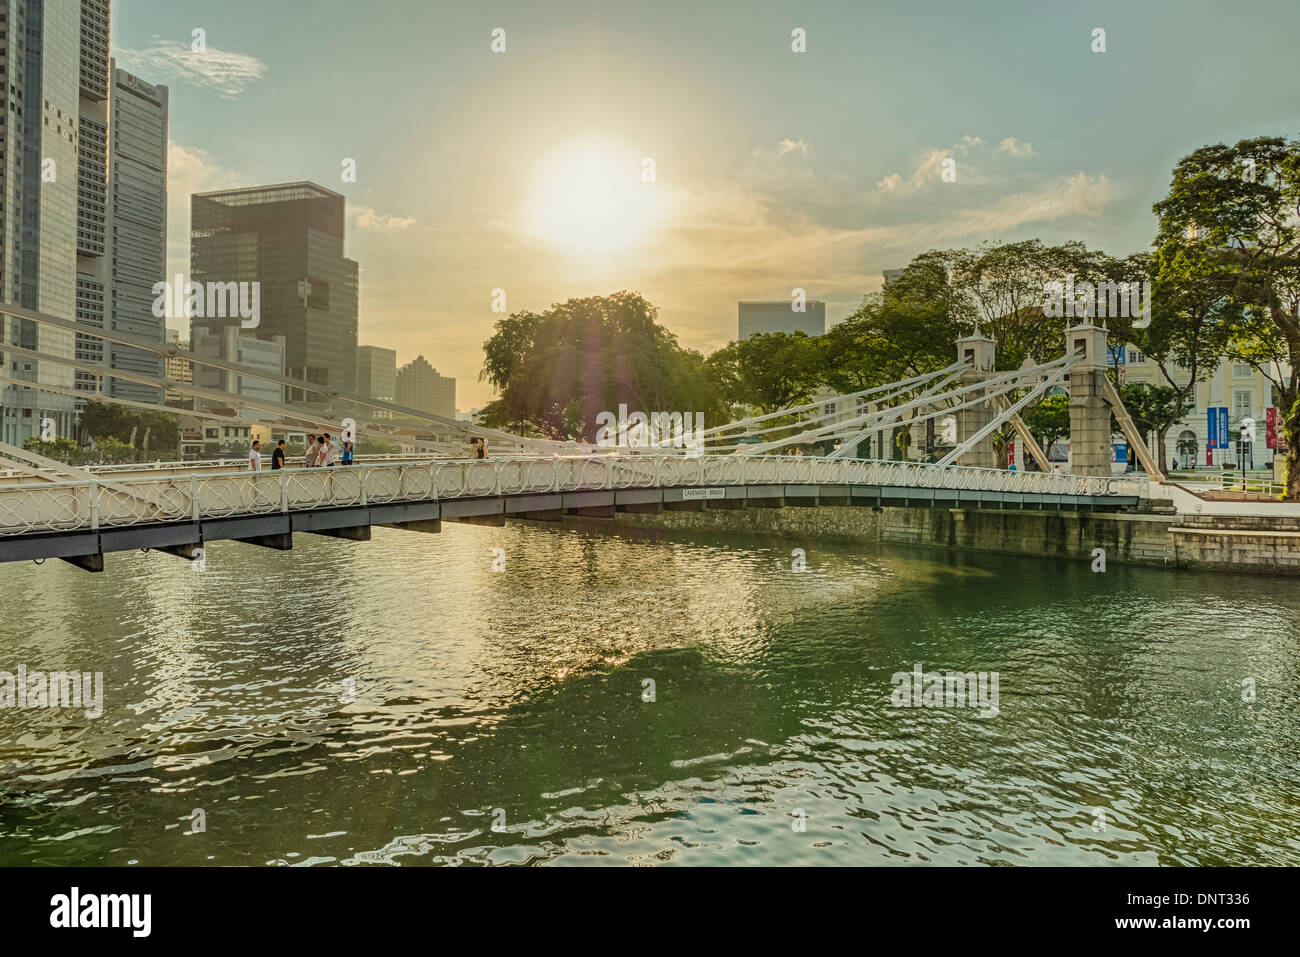 Anderson Bridge, Singapore - Stock Image